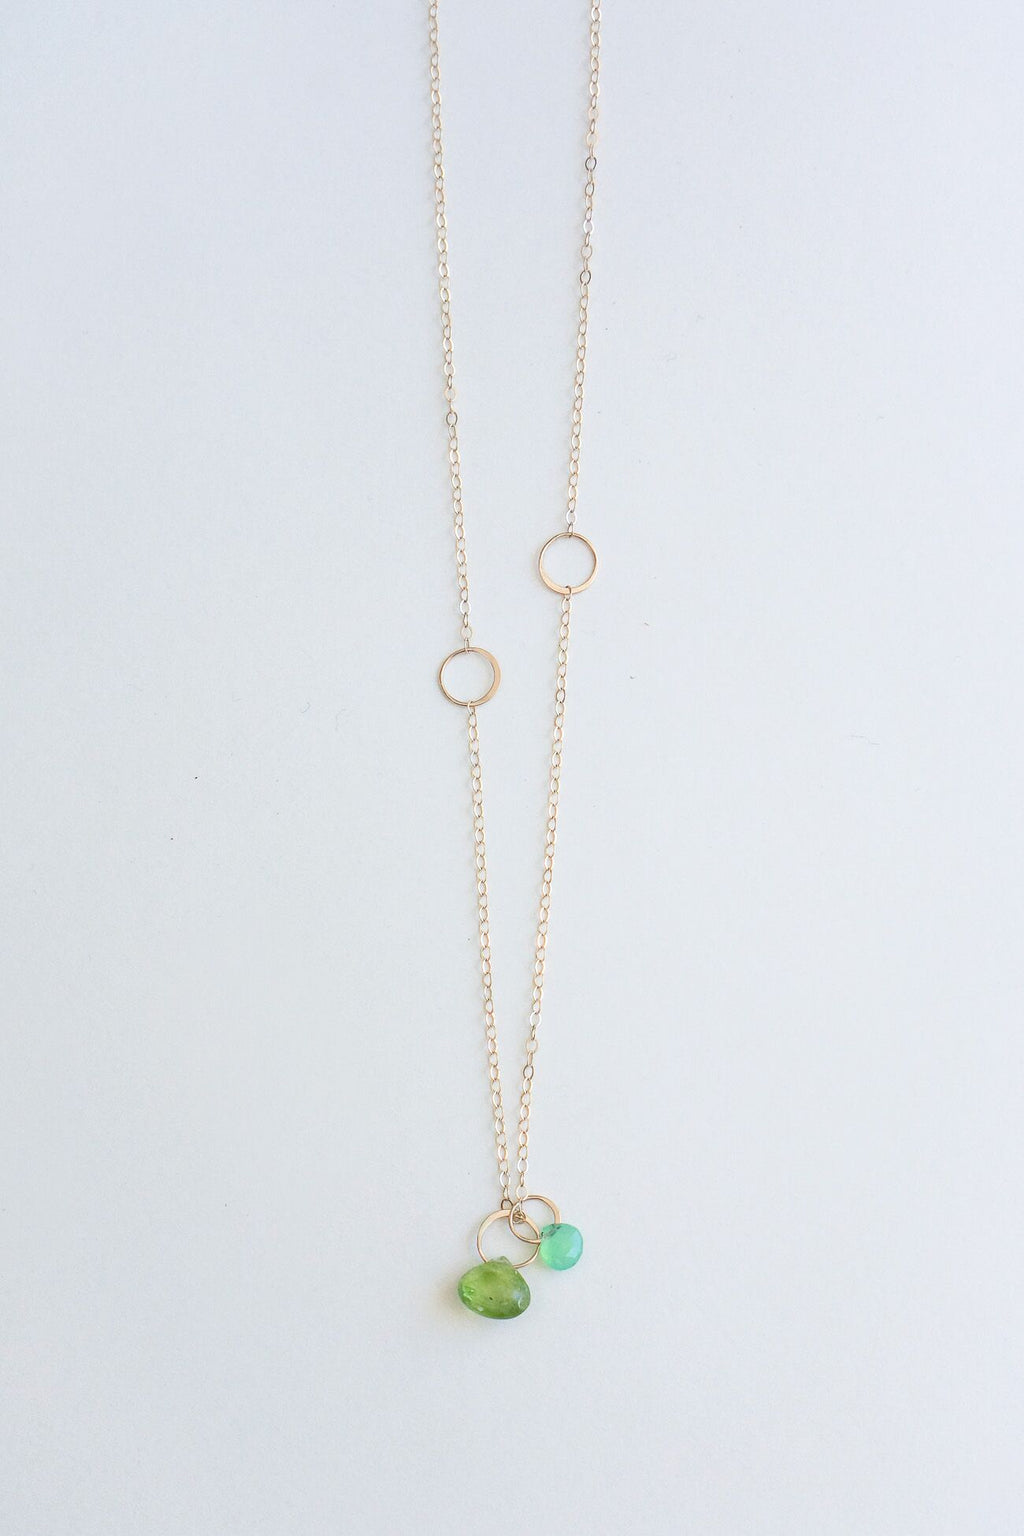 Melissa Joy Manning 14K Yellow Gold Chrysoprase & Peridot Drop Necklace